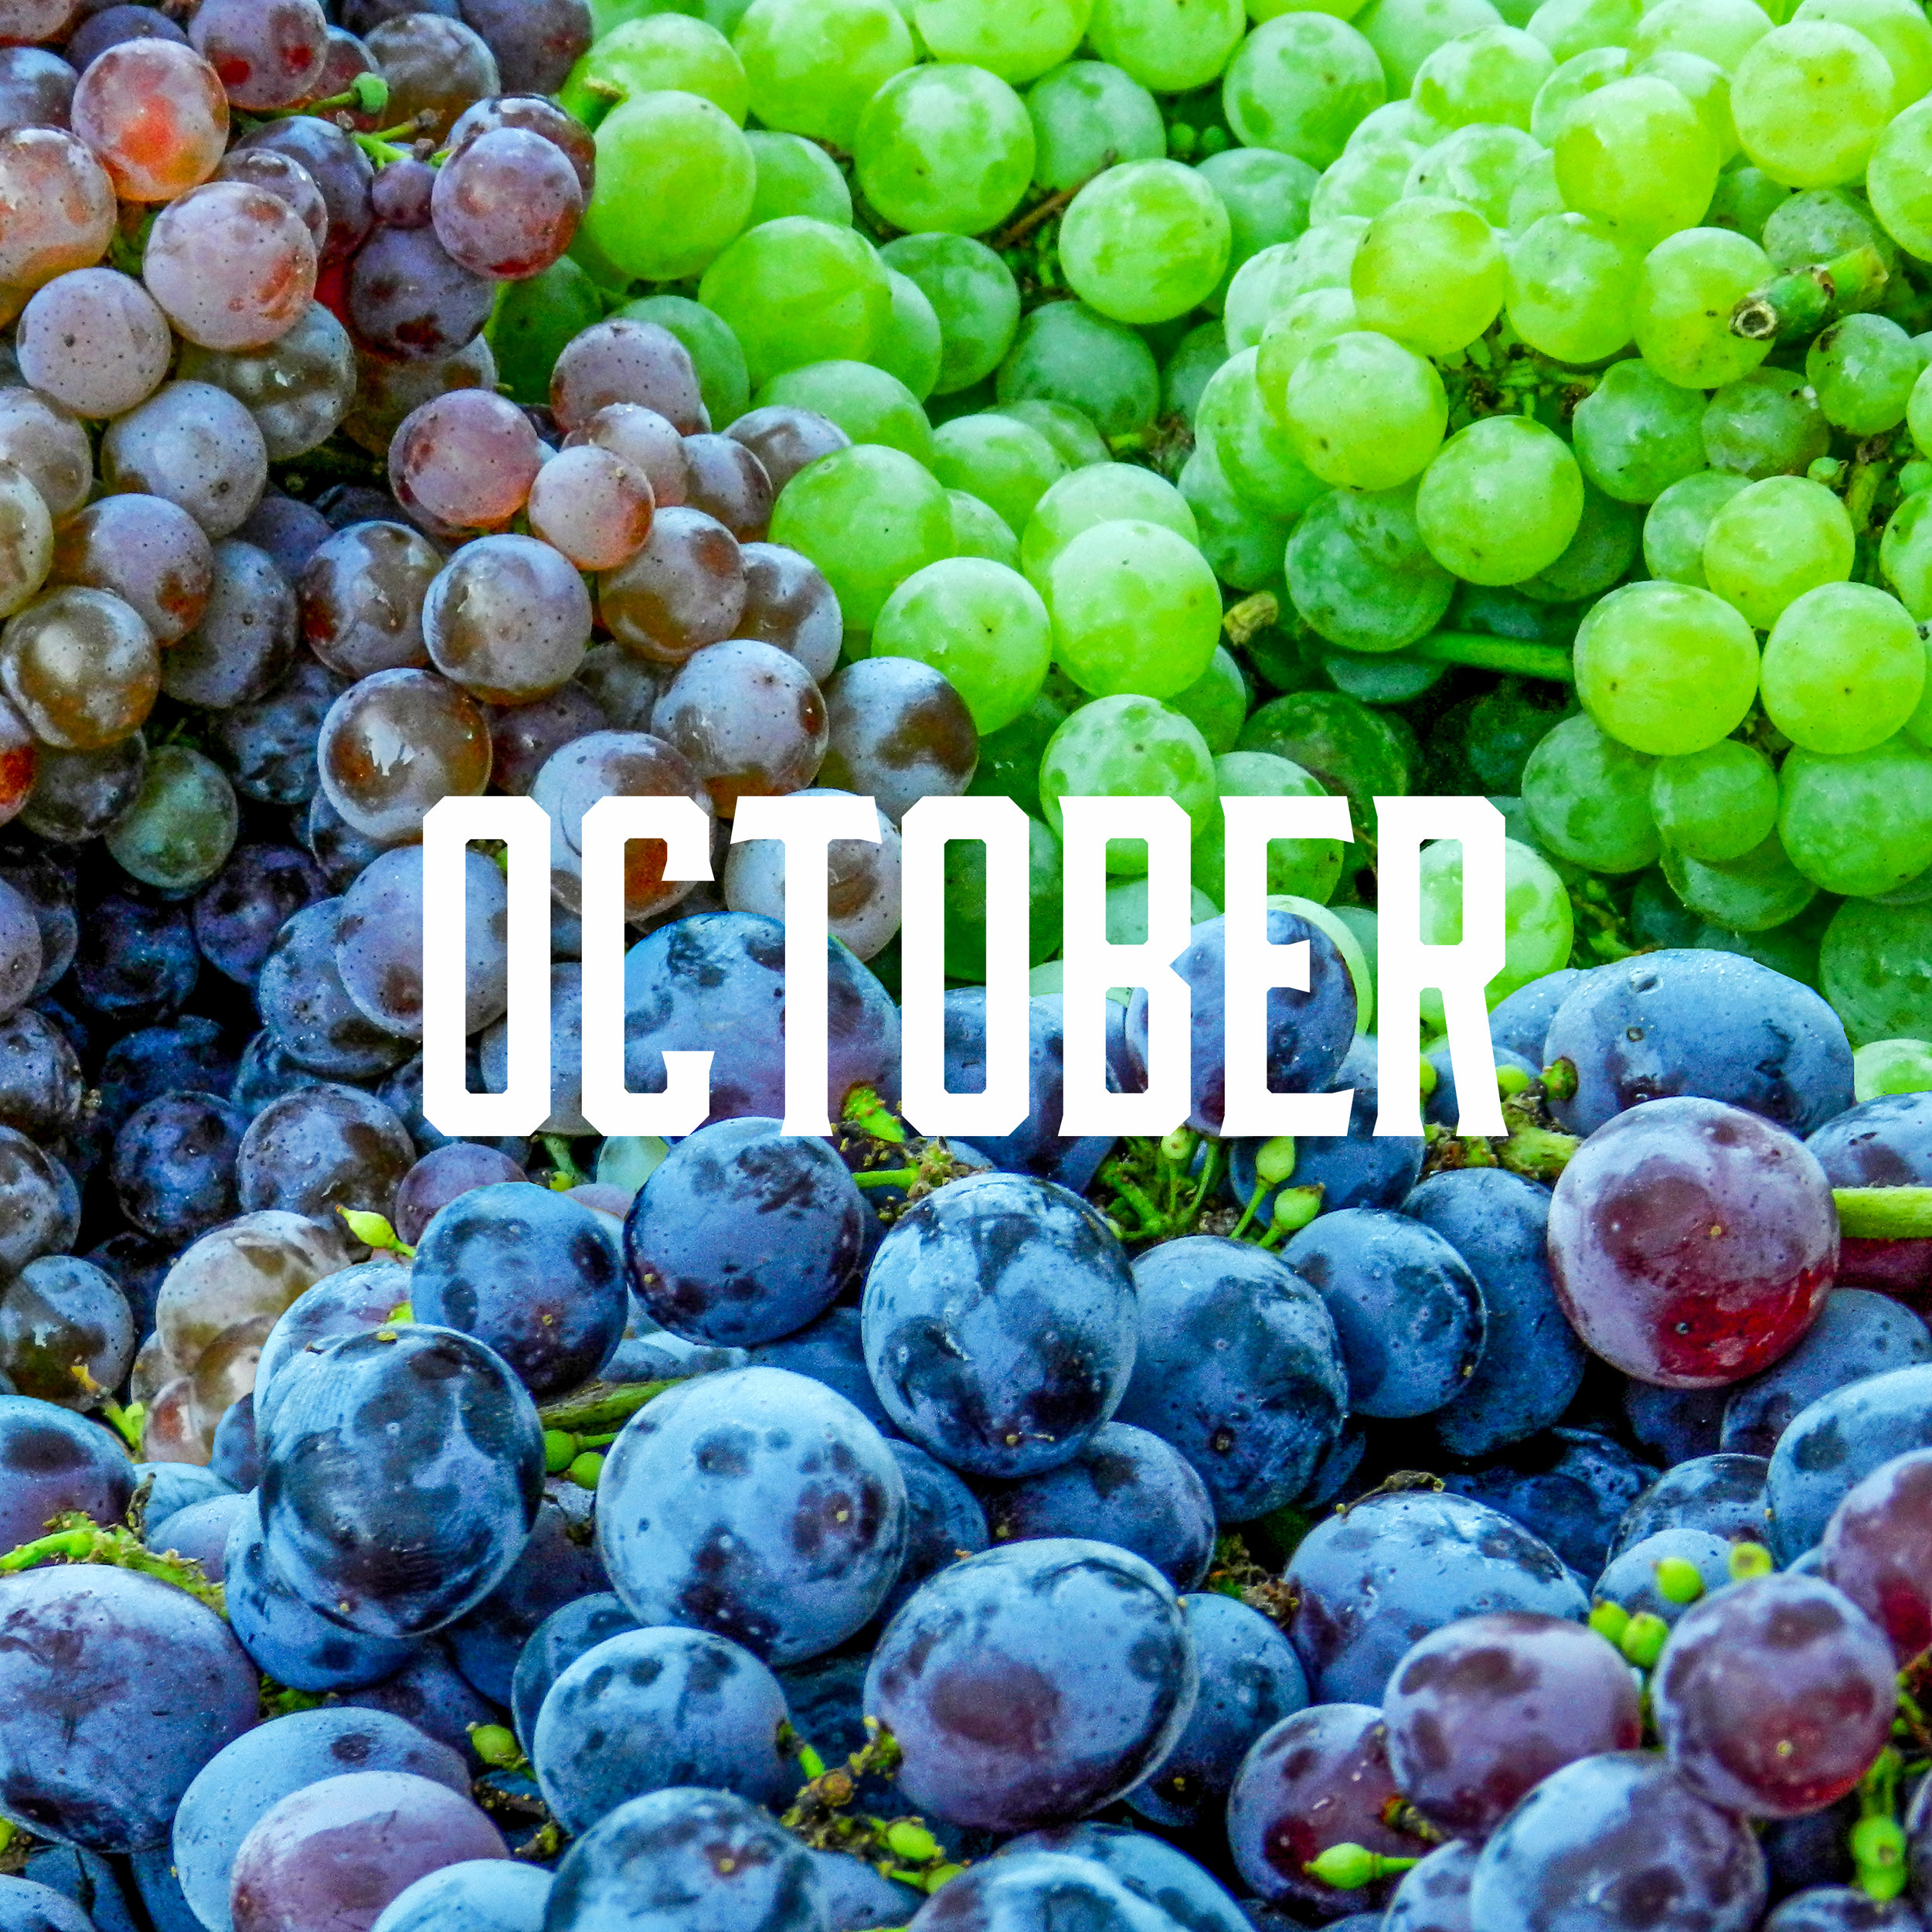 October season - In our last month of the market, we still have tons of great produce to offer!Apples, Artichokes, Arugula, Basil, Beets, Brussels Sprouts, Cabbage, Cantaloupes, Celery, Chard, Chili Peppers, Collard Greens, Corn, Eggplant, Fennel, Garlic, Grapes, Scallions, Kale, Kiwi, Leeks, Lettuce, Melons, Mint, Mushrooms, Onions, Oregano, Parsley, Sweet Peppers, Potatoes, Pumpkins, Radishes, Rosemary, Rutabaga, Shelling Beans, Spinach, Summer Squash, Winter Squash, Thyme, Tomatoes, Turnips, Zucchini